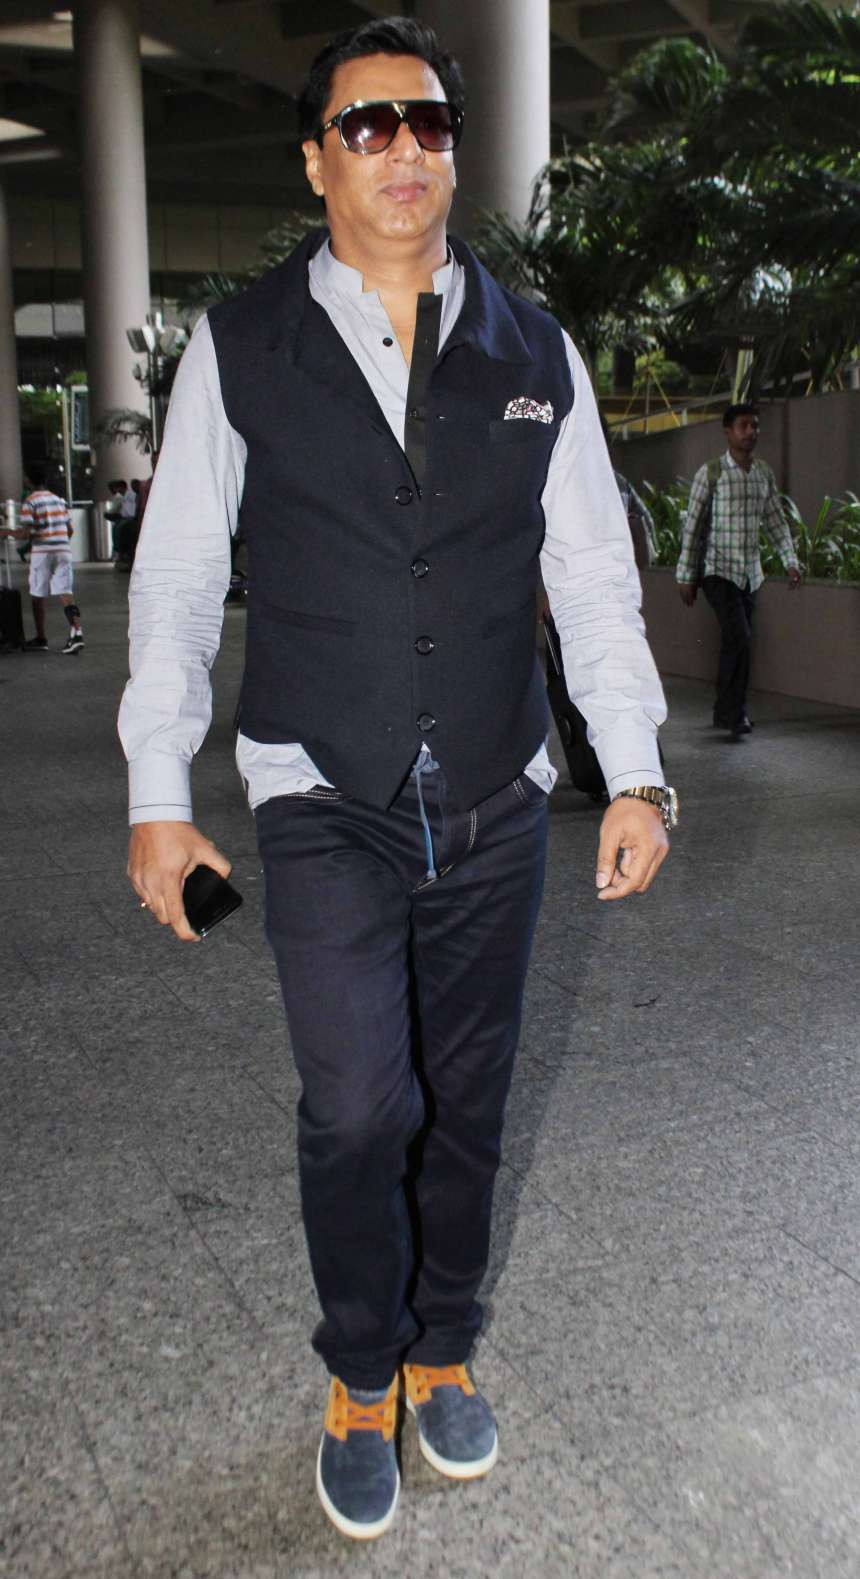 Gulshan Grover: Gulshan Grover wore a light blue shirt, navy blue trousers and a waist coat of the same colour at an airport.